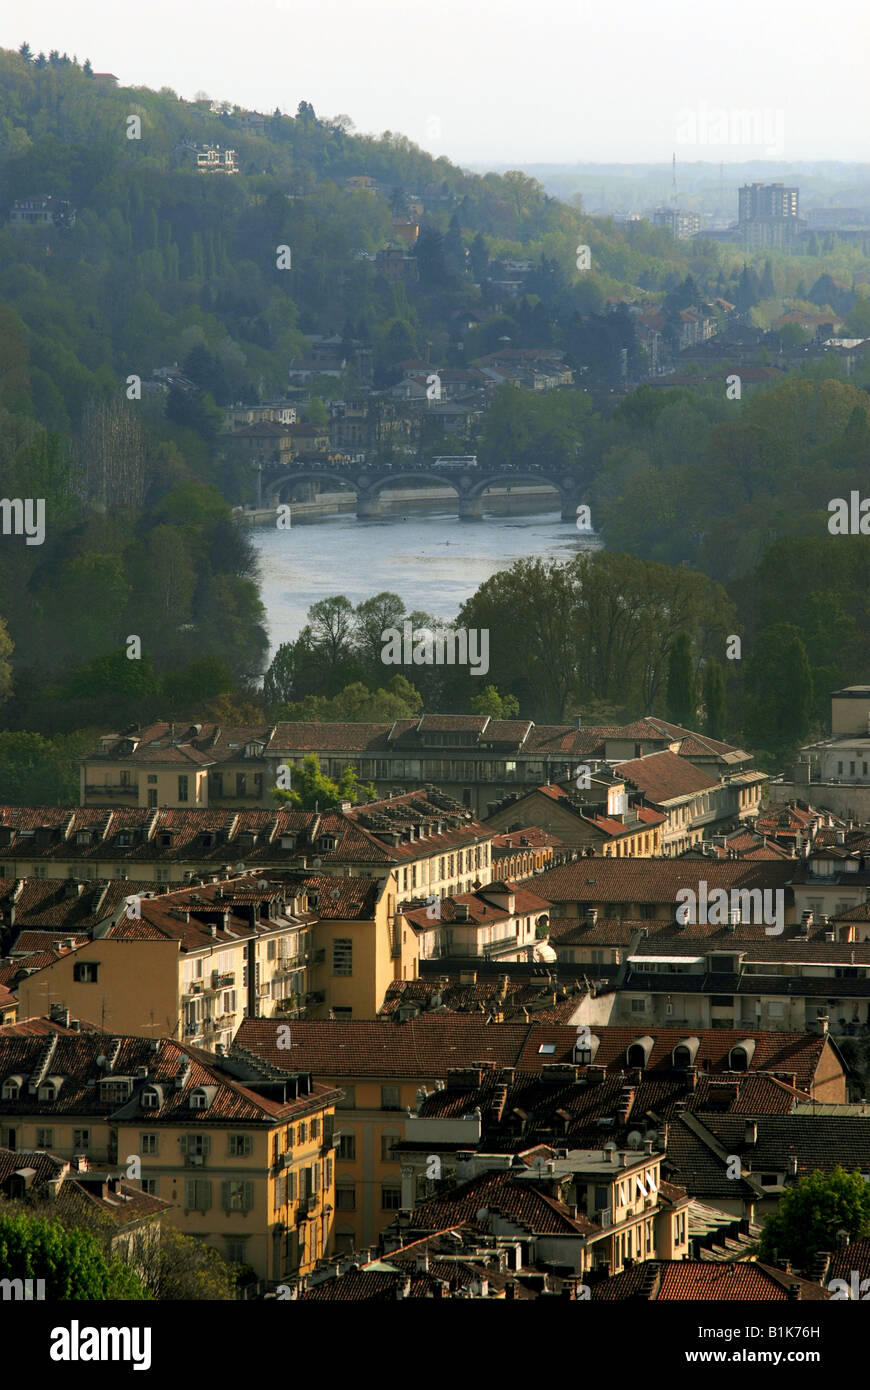 The city of Turin, Piedmont, Italy, with the River Po running through it. Stock Photo